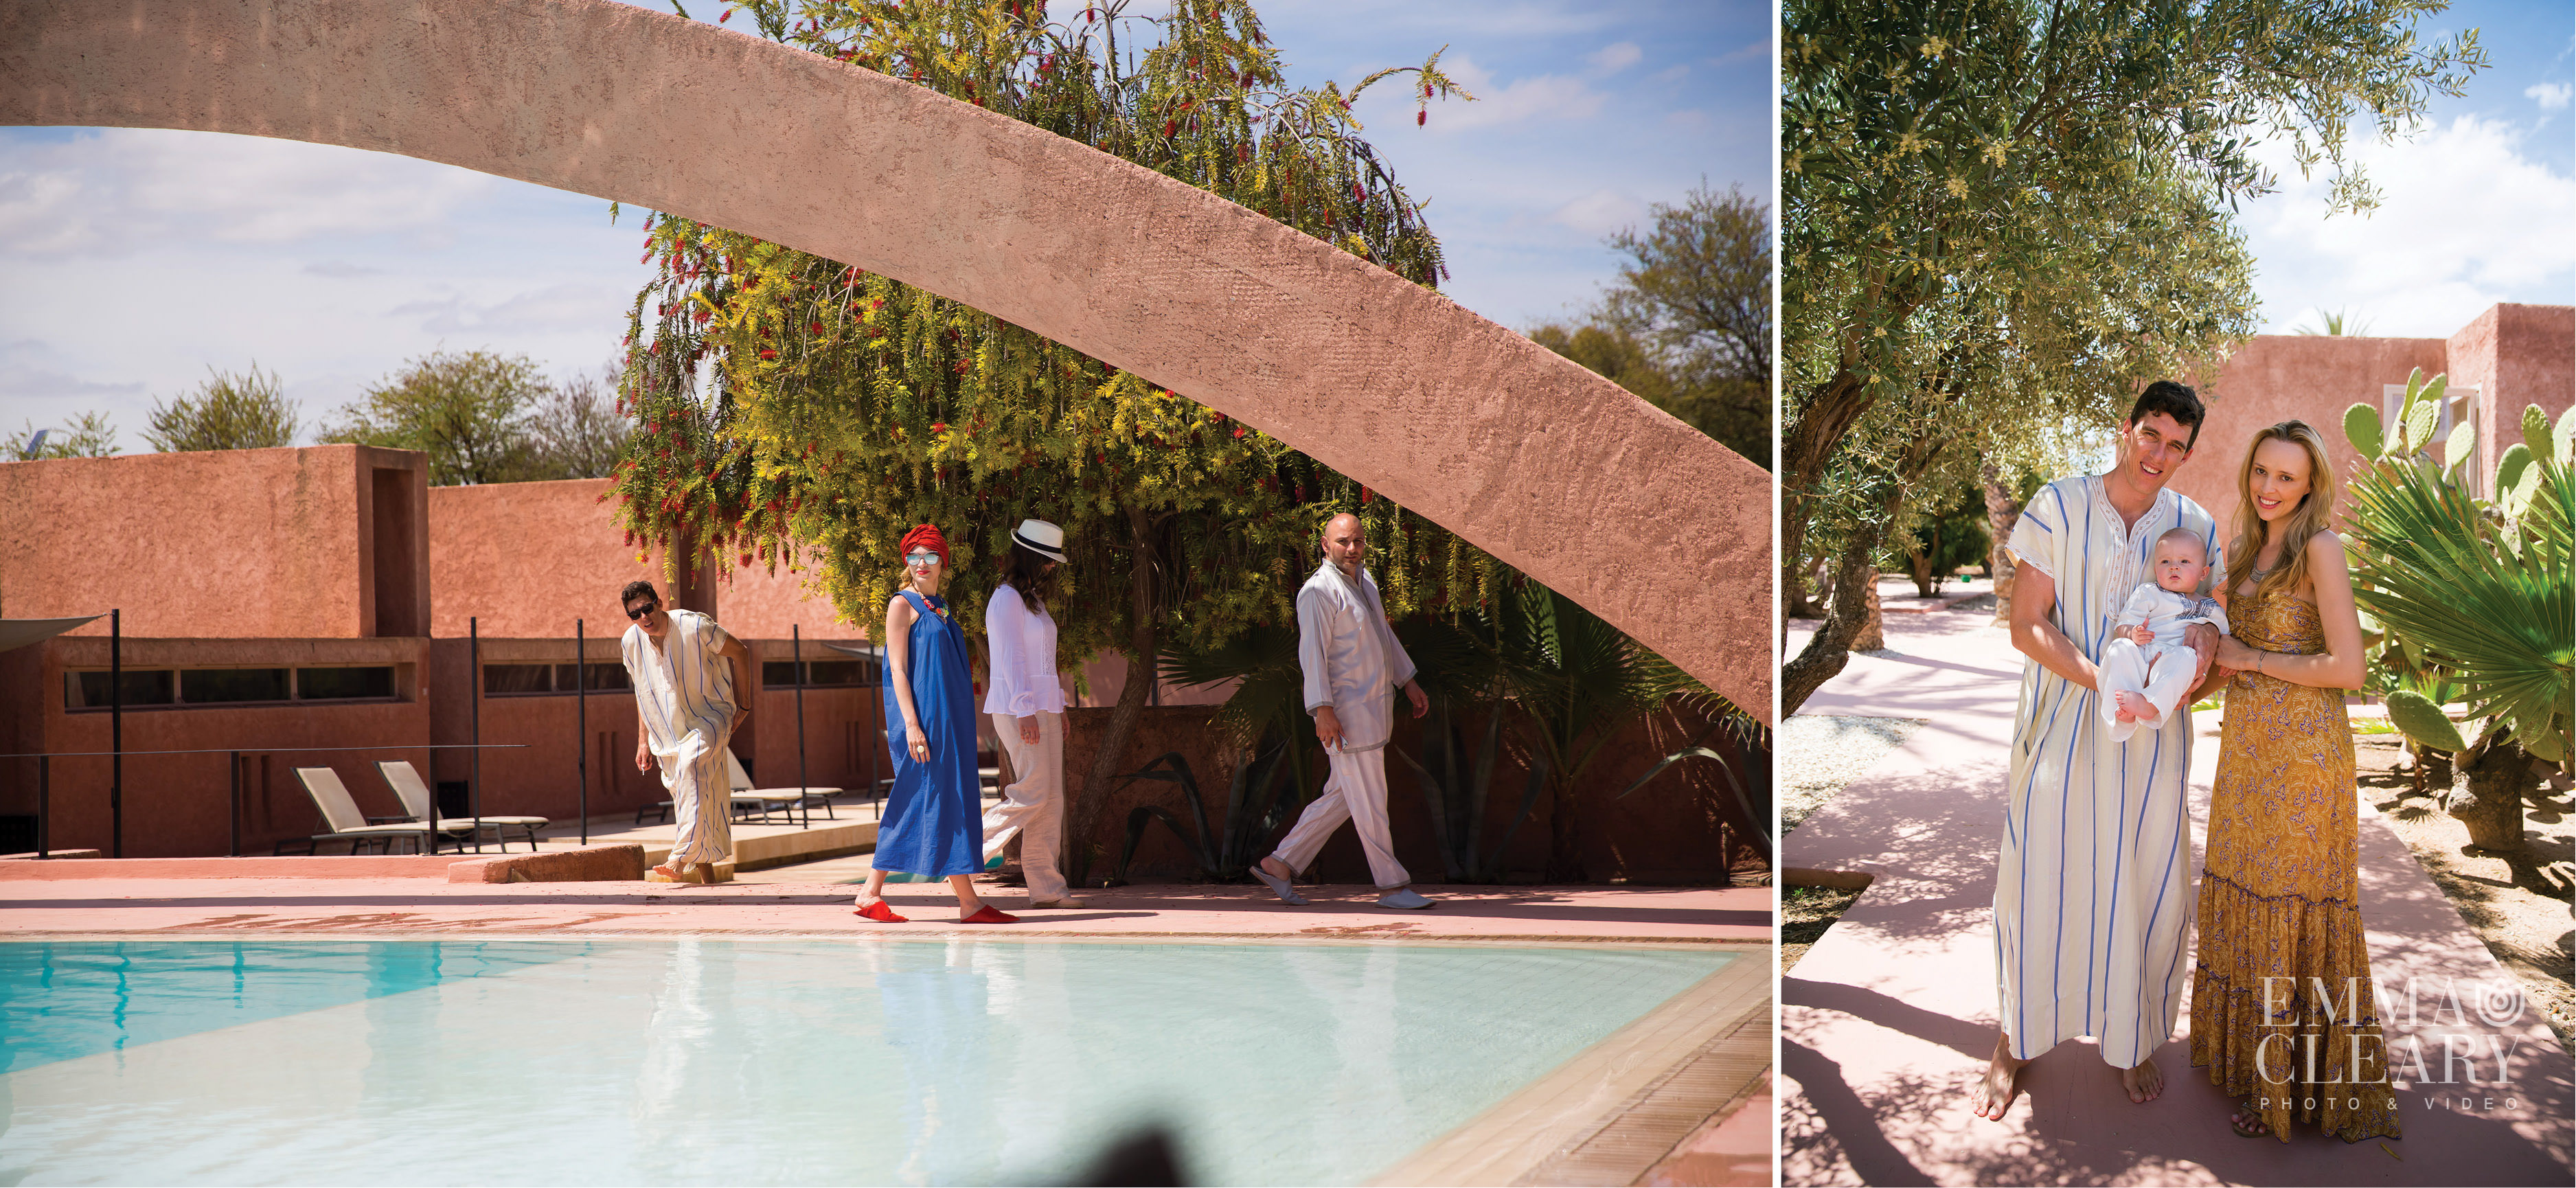 Emma_cleary_photography Destination Wedding Morrocco21